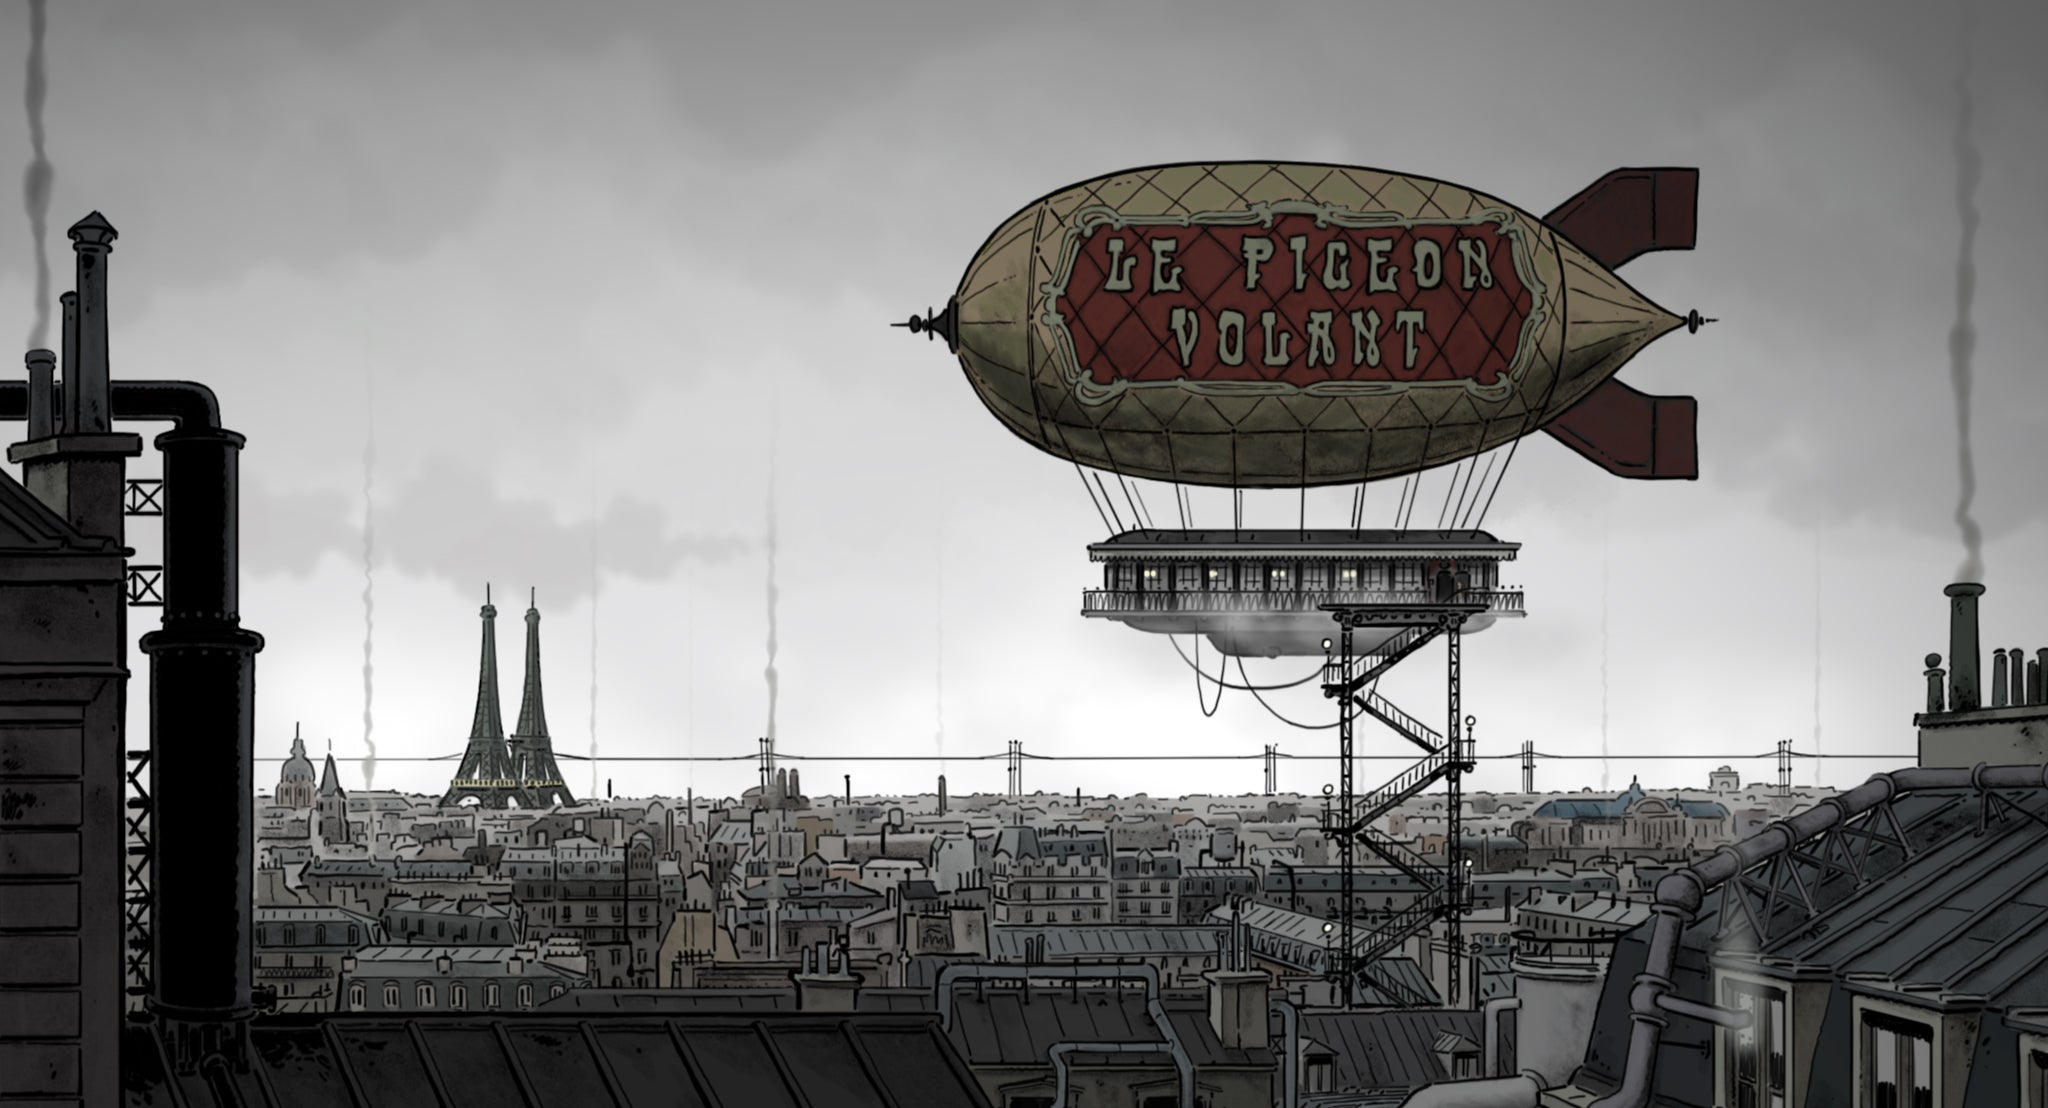 A Must-See Trailer for an Incredible Animated Steampunk Adventure